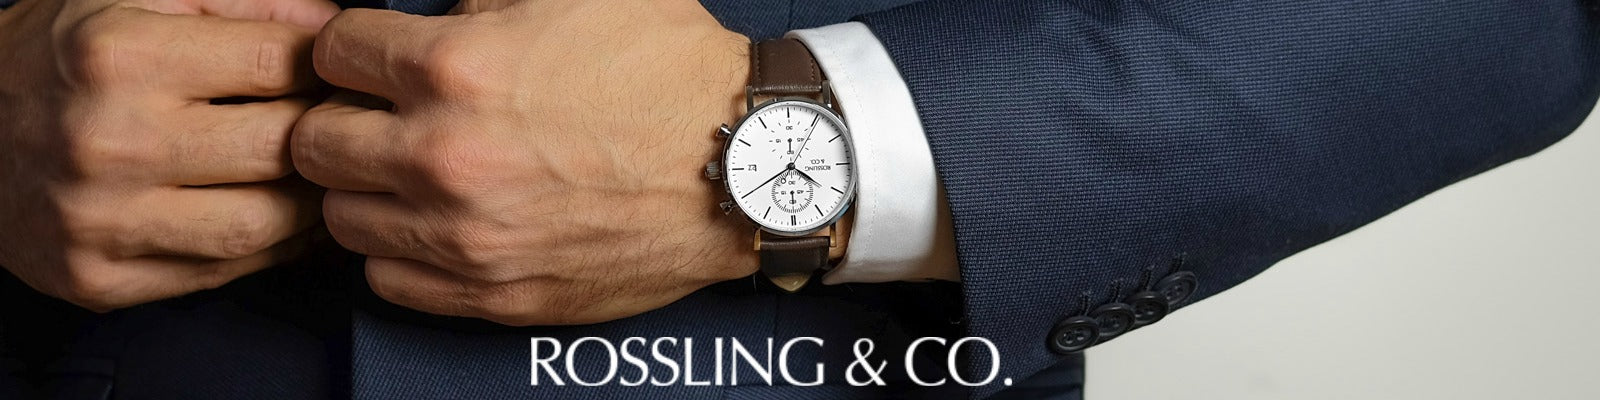 Rossling & Co. stylish watches available online at Sportique.